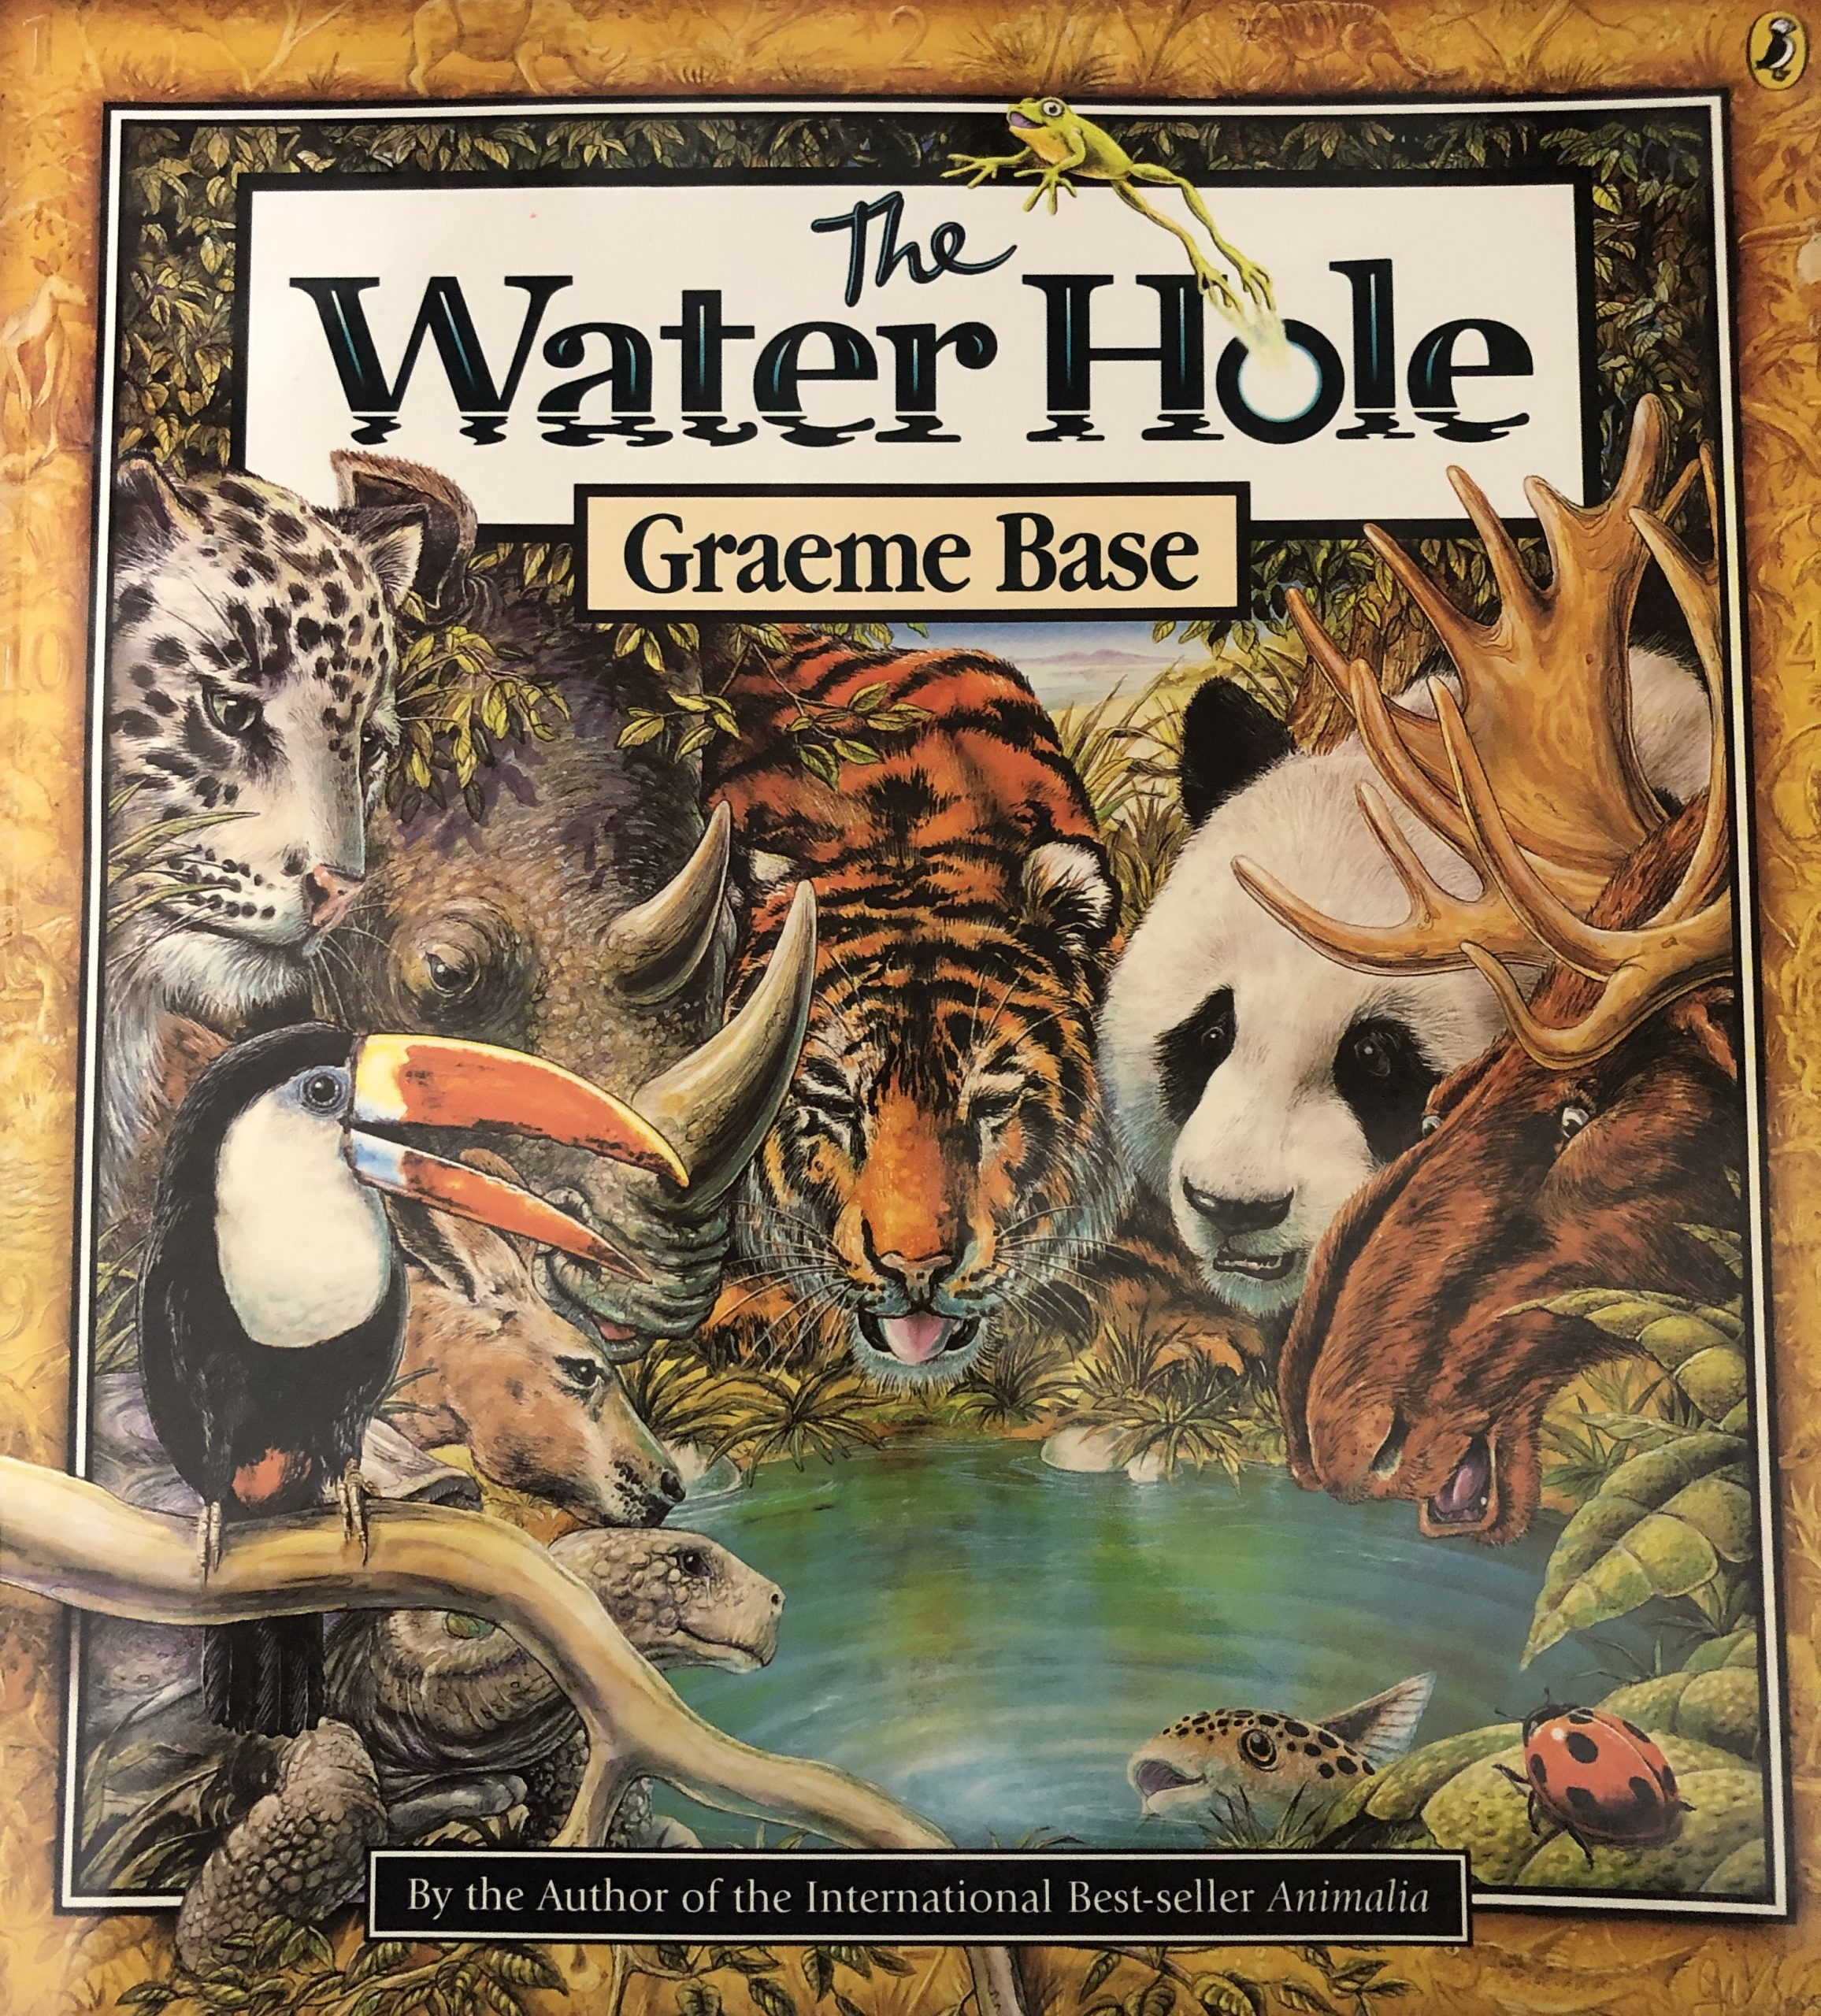 Review: The Water Hole